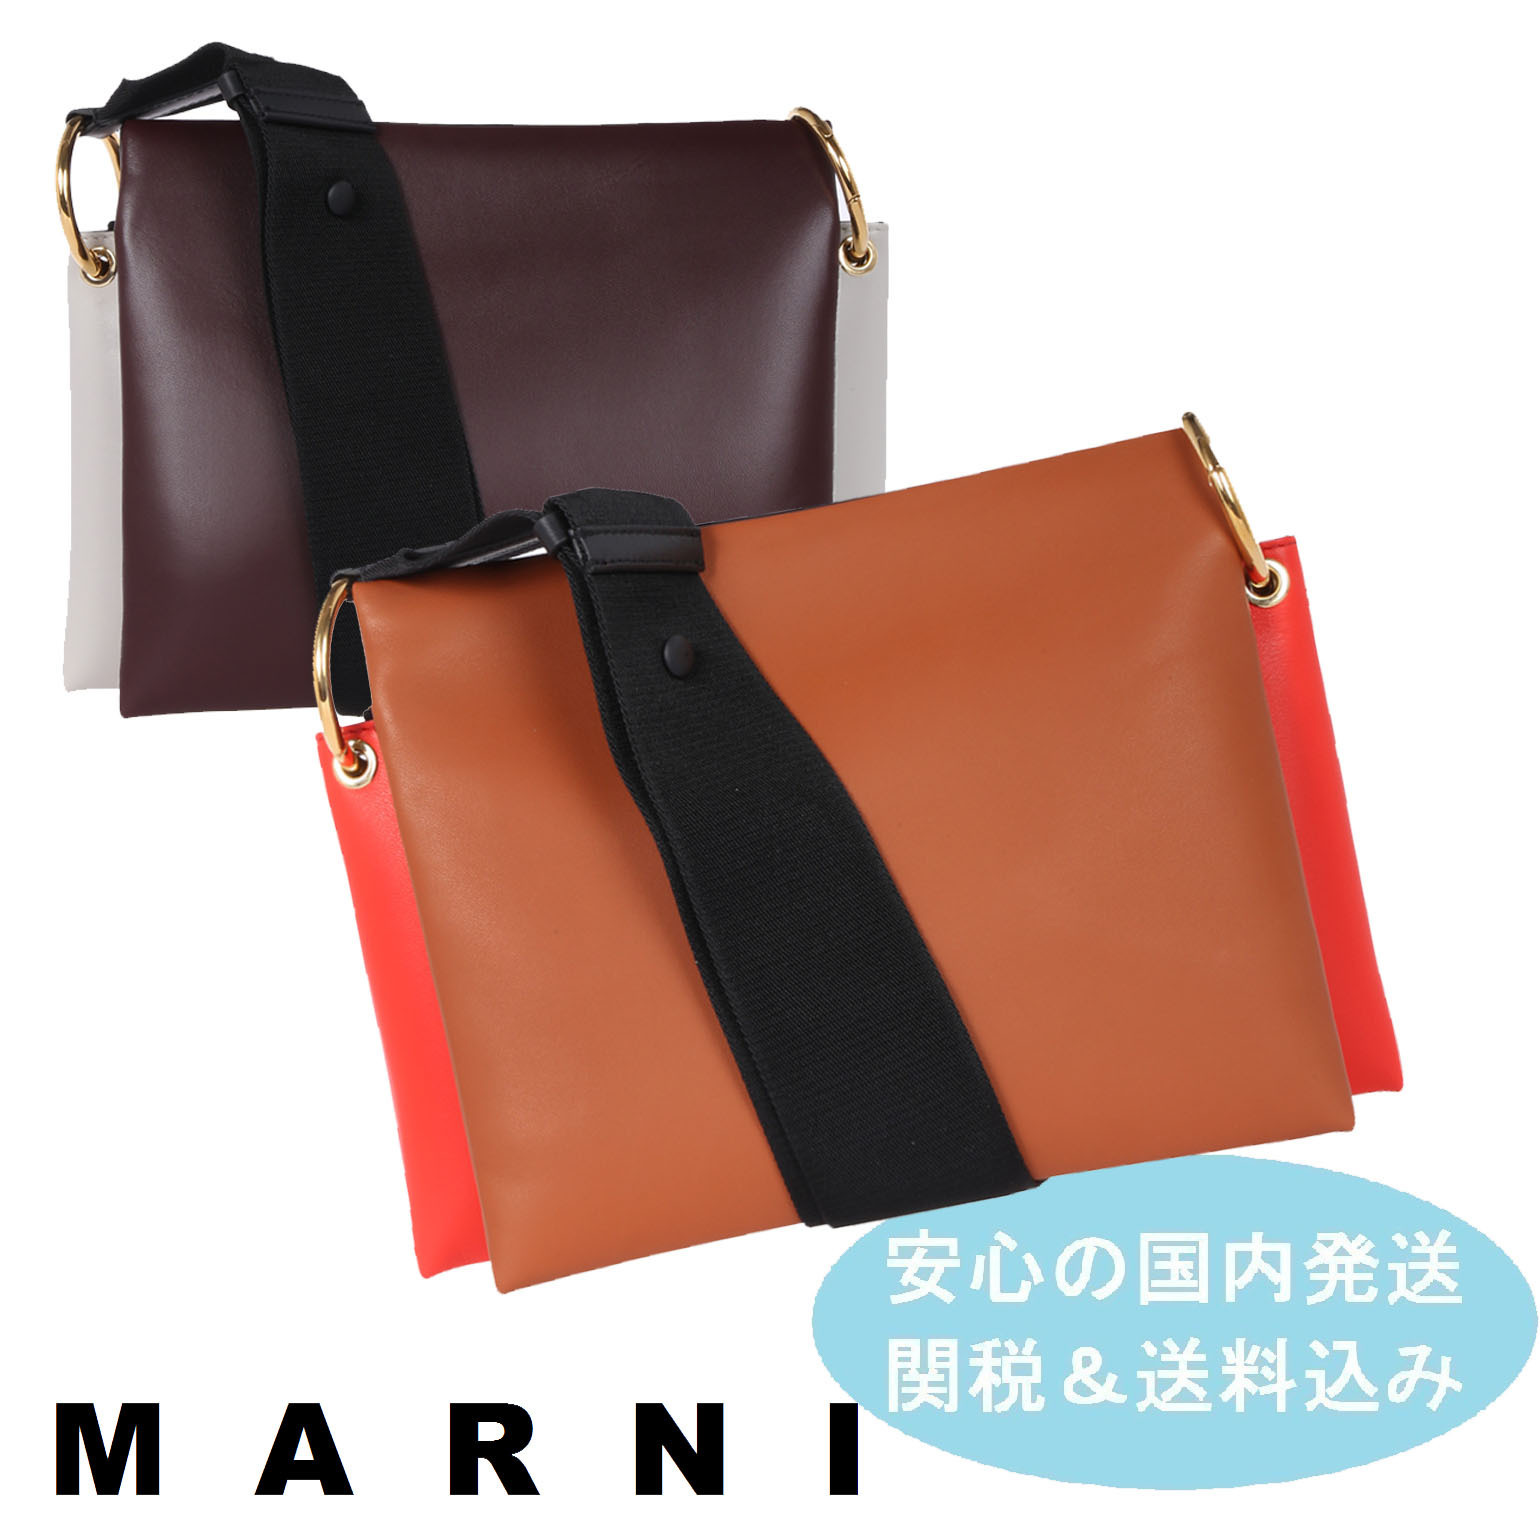 【送料関税込】MARNI★Beat Bag in Tricolor Leather★国内発送